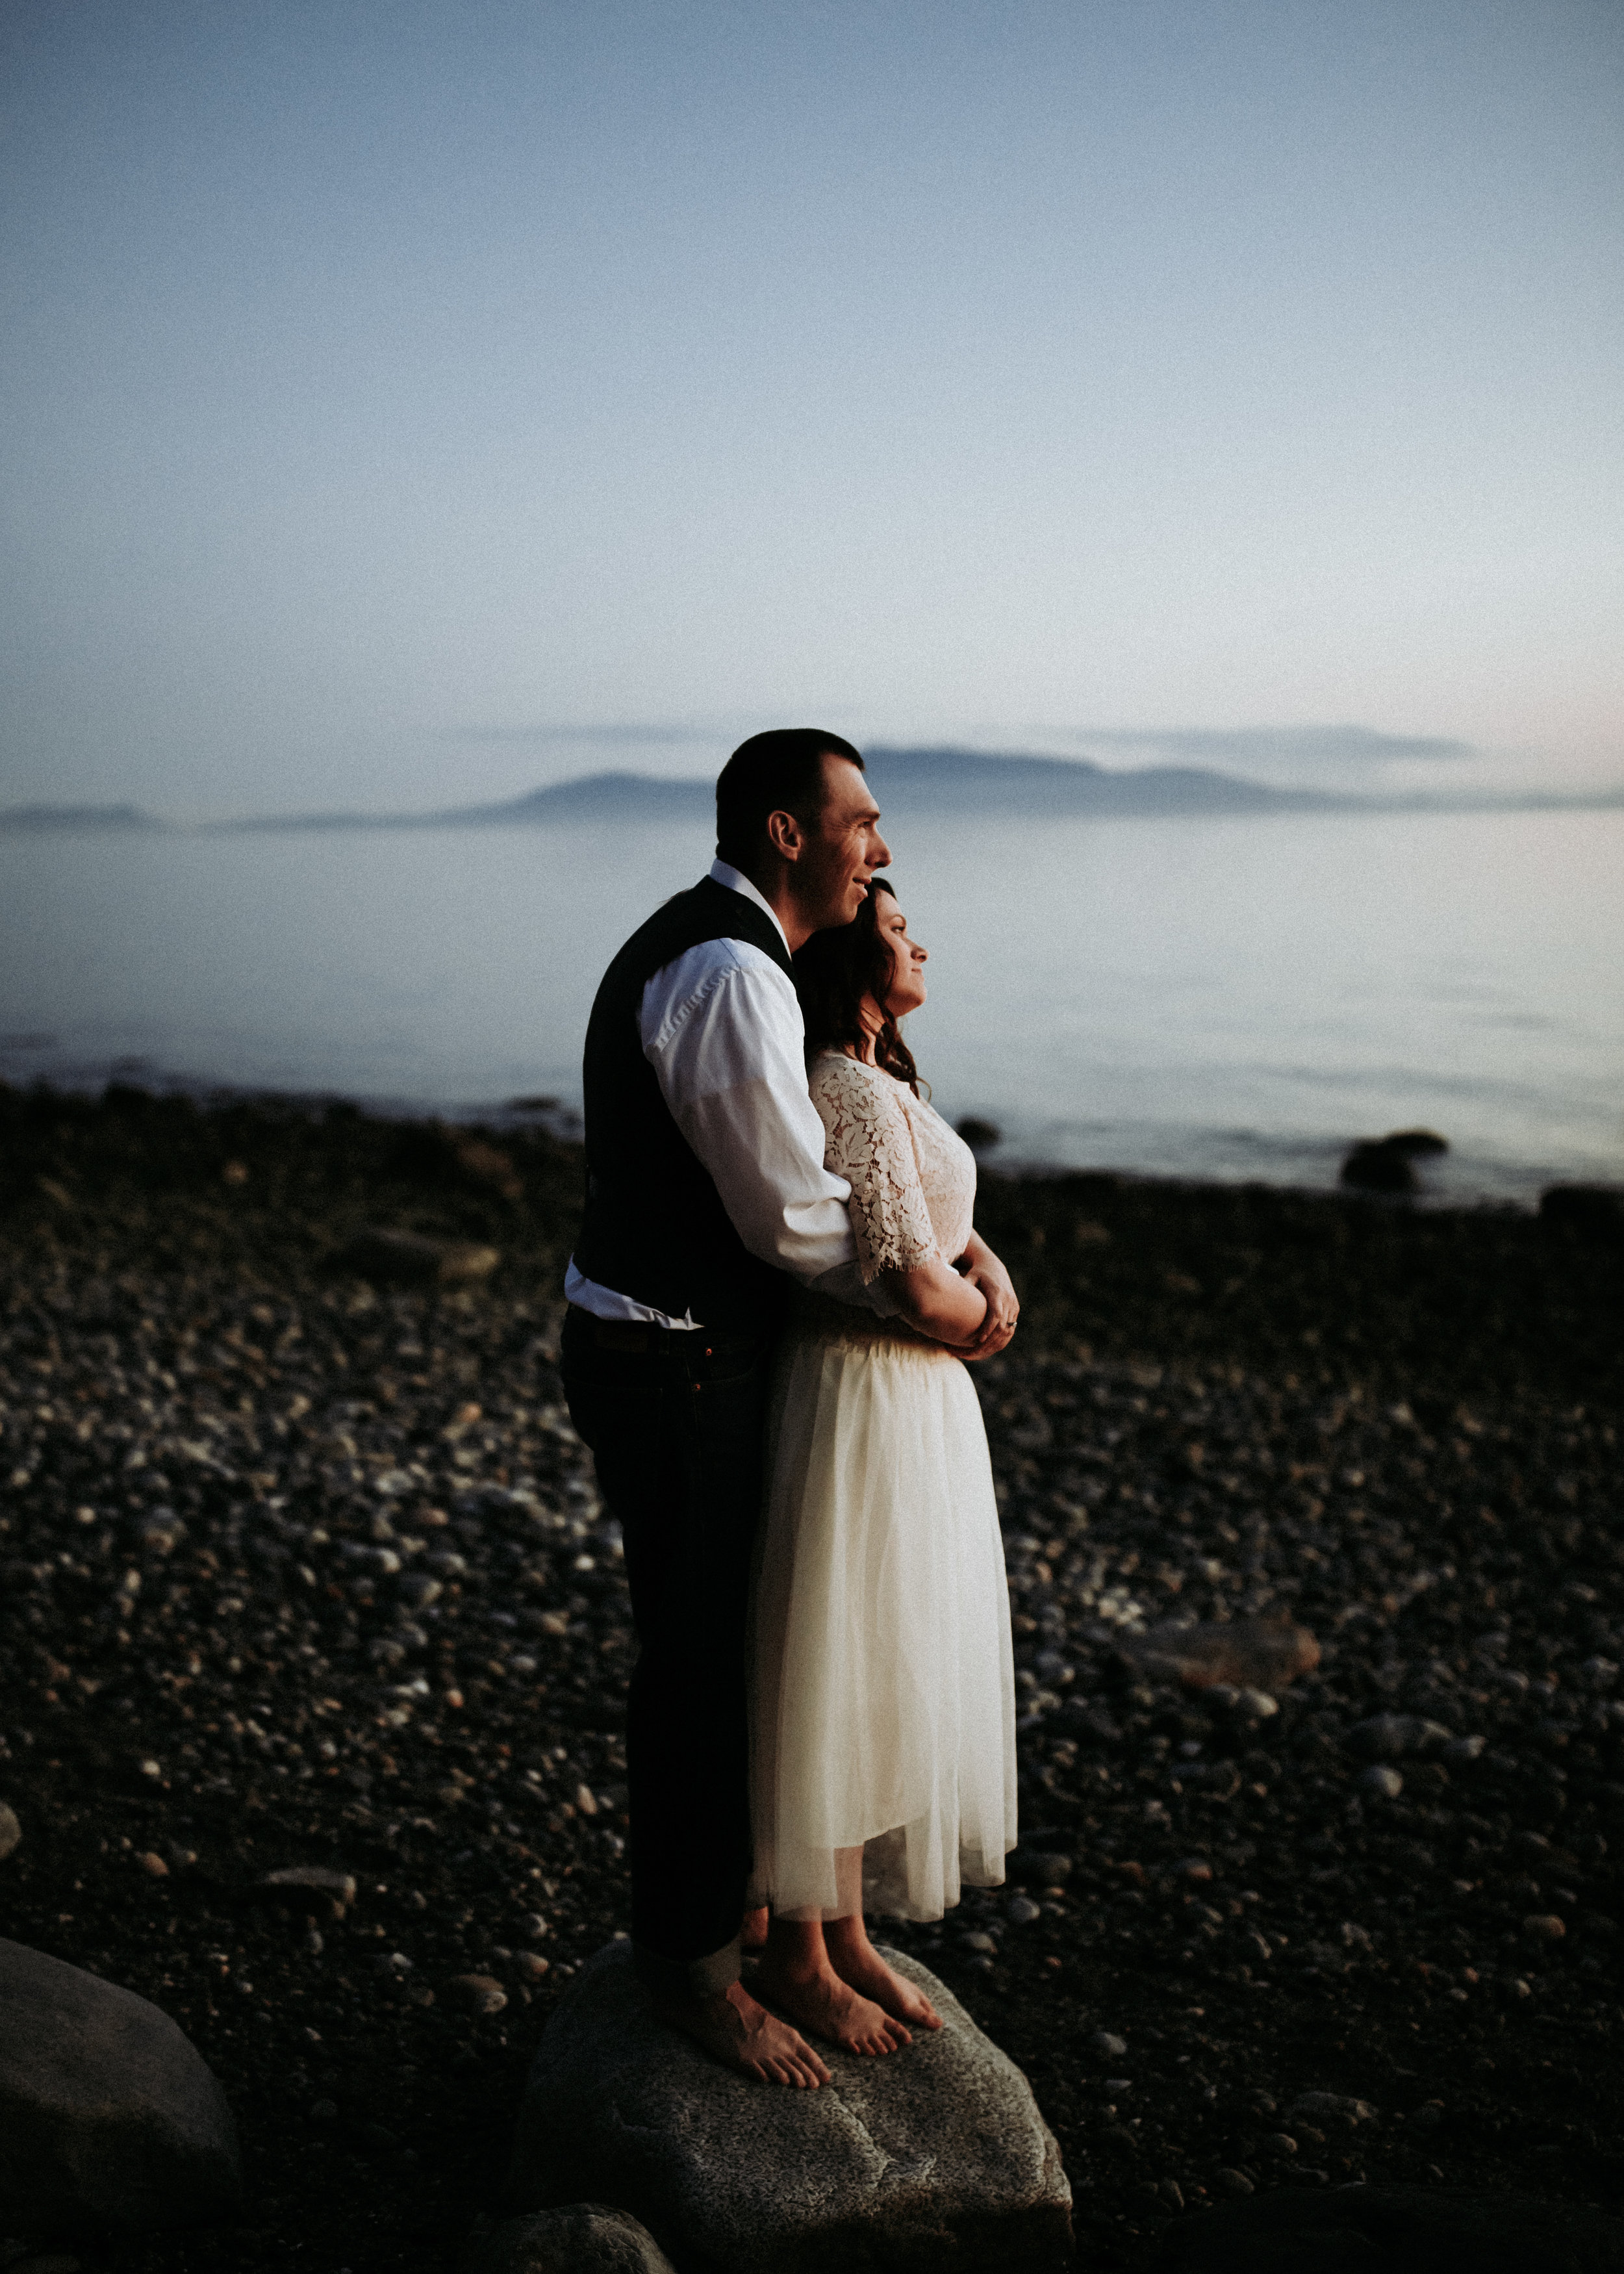 Engagement-Photographer-Bellingham-WA-Brianne-Bell-Photograpy-(Coral)-8.jpg